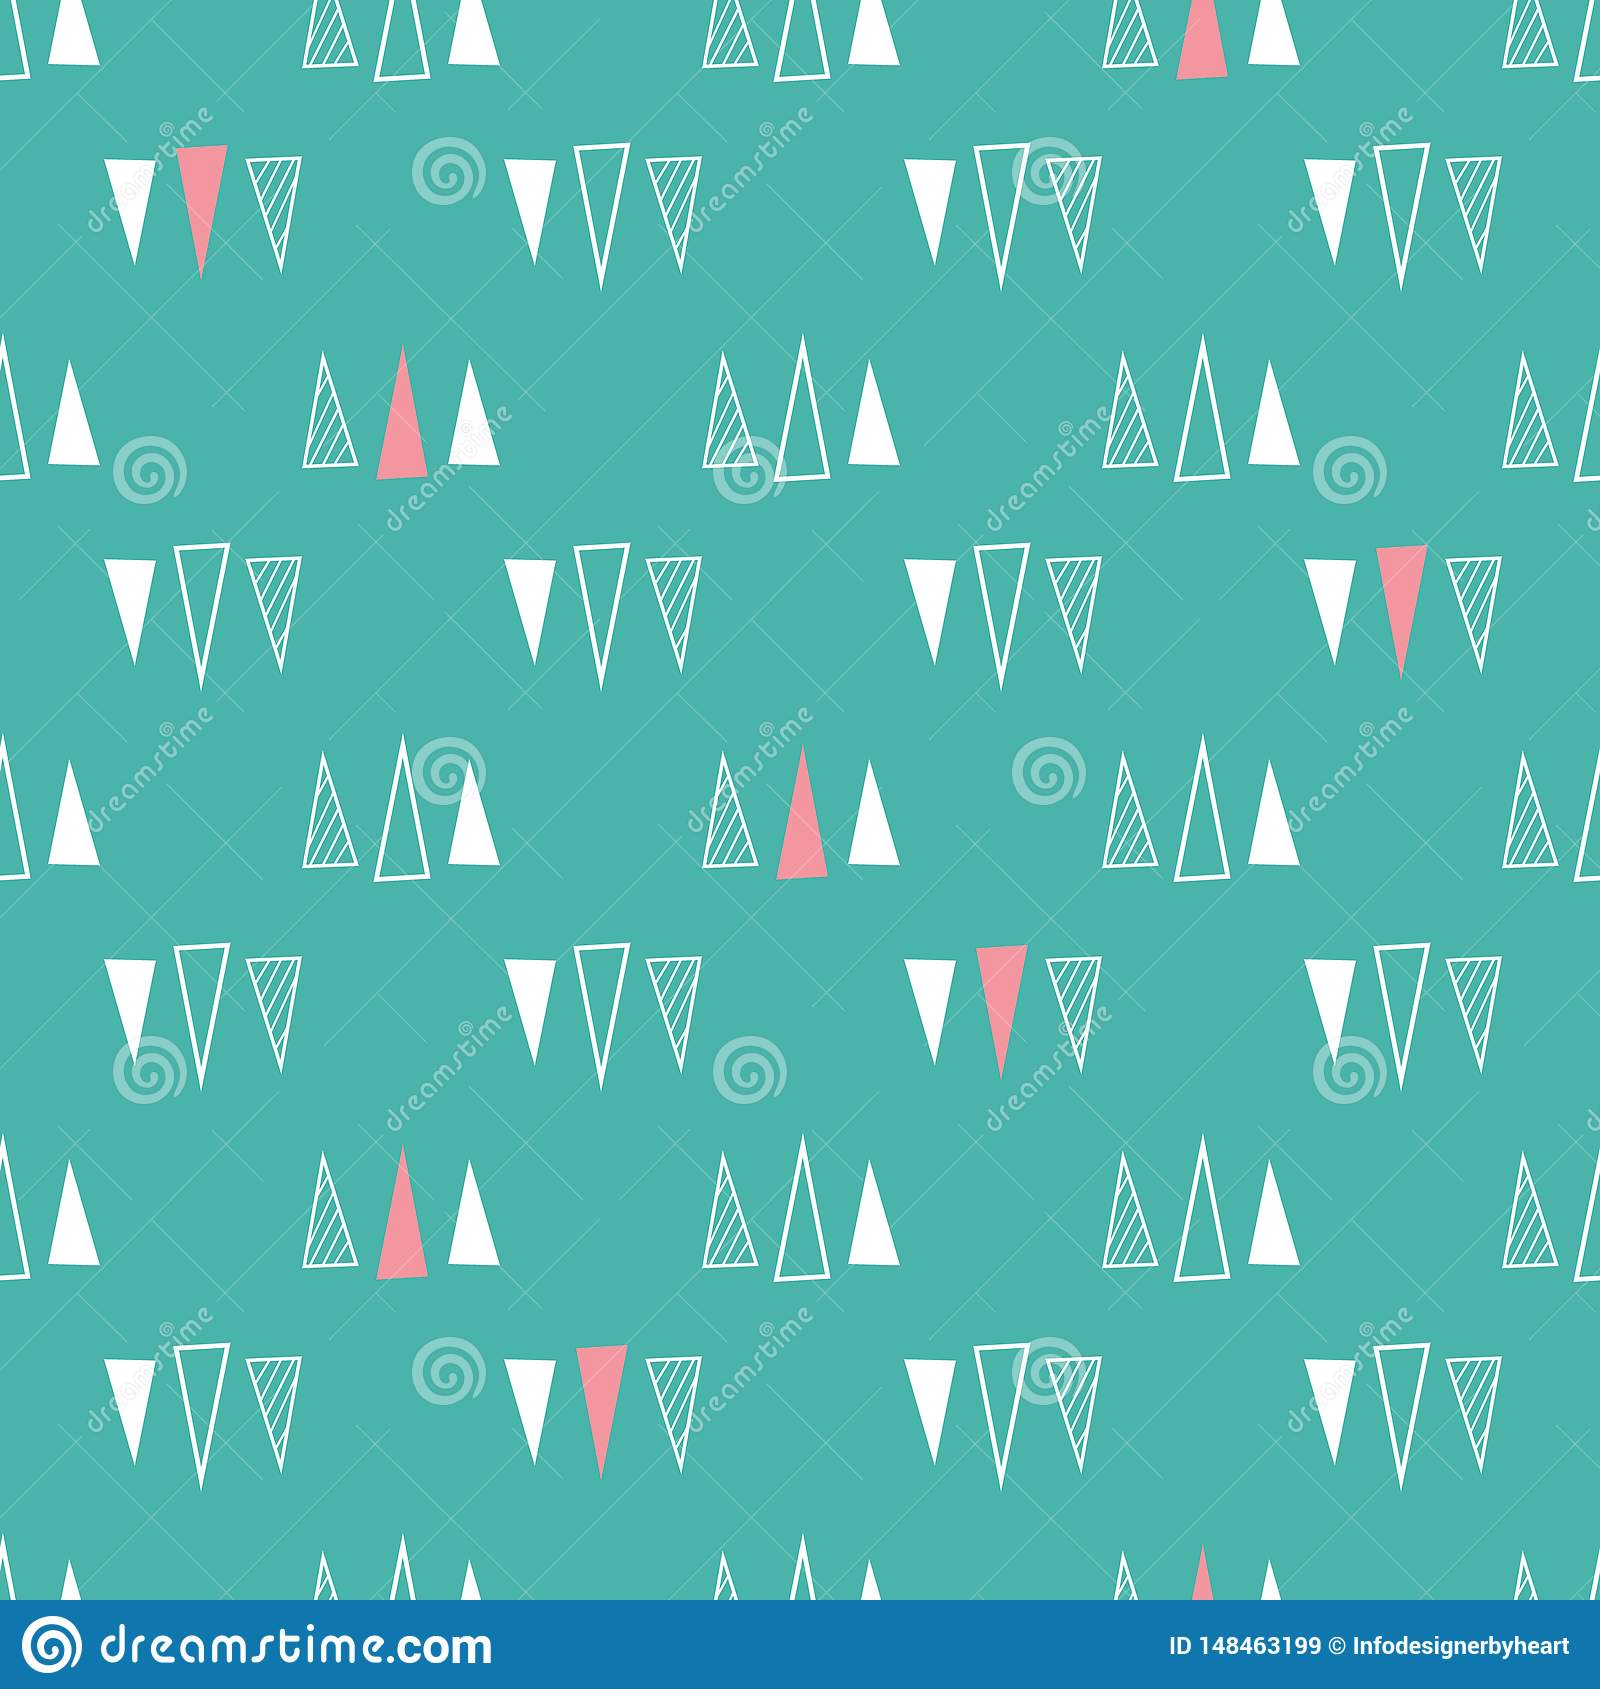 Seamless pattern of triangles on a mint green background.